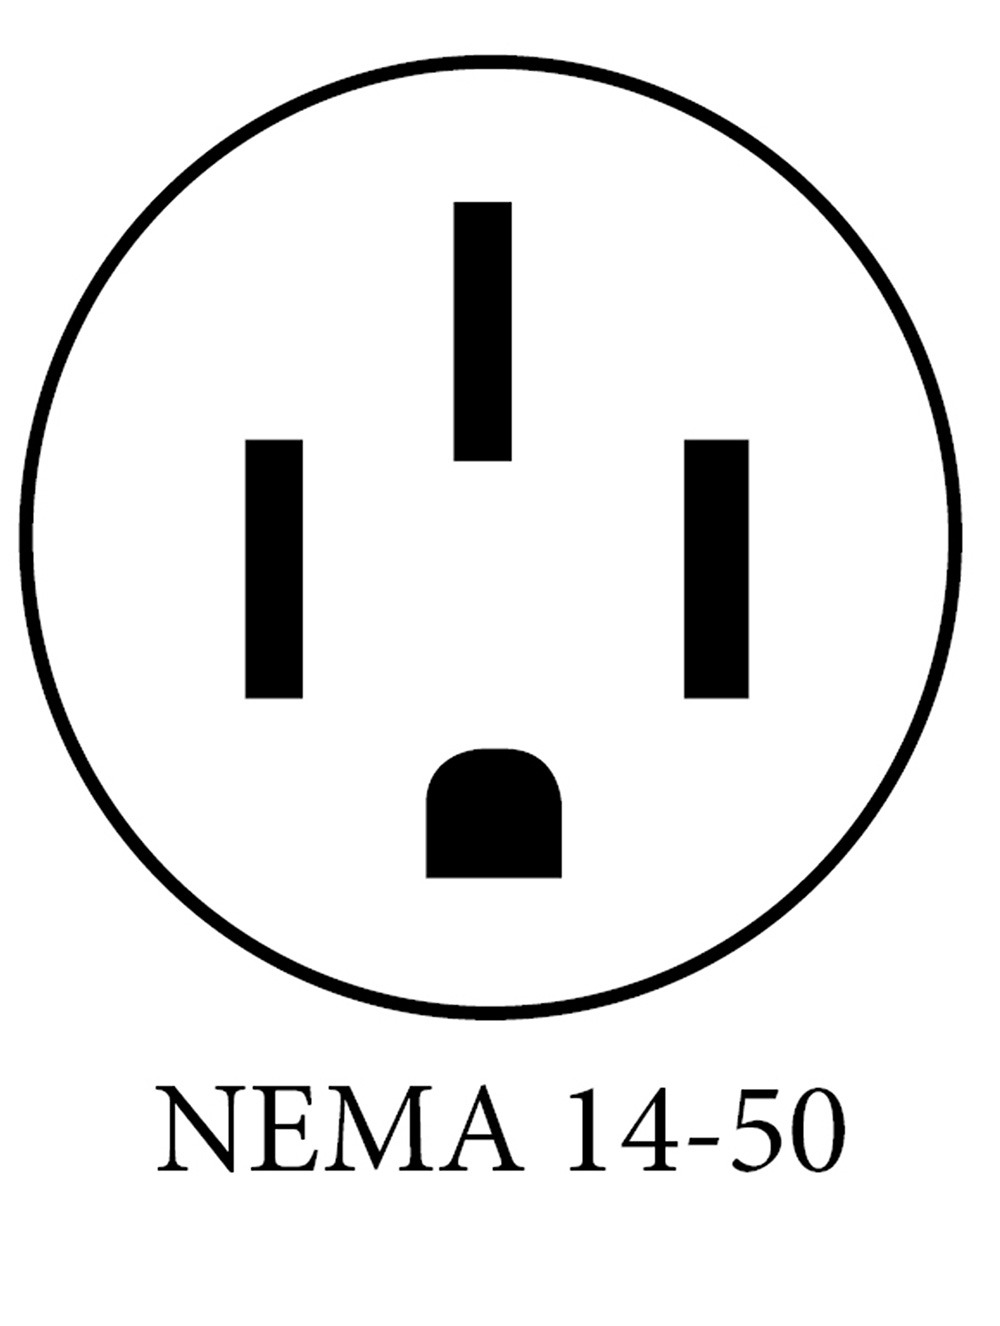 NEMA 14 50 PLUG DIAGRAM w what plugs are available on ev charging stations? nema 6 50r wiring diagram at soozxer.org